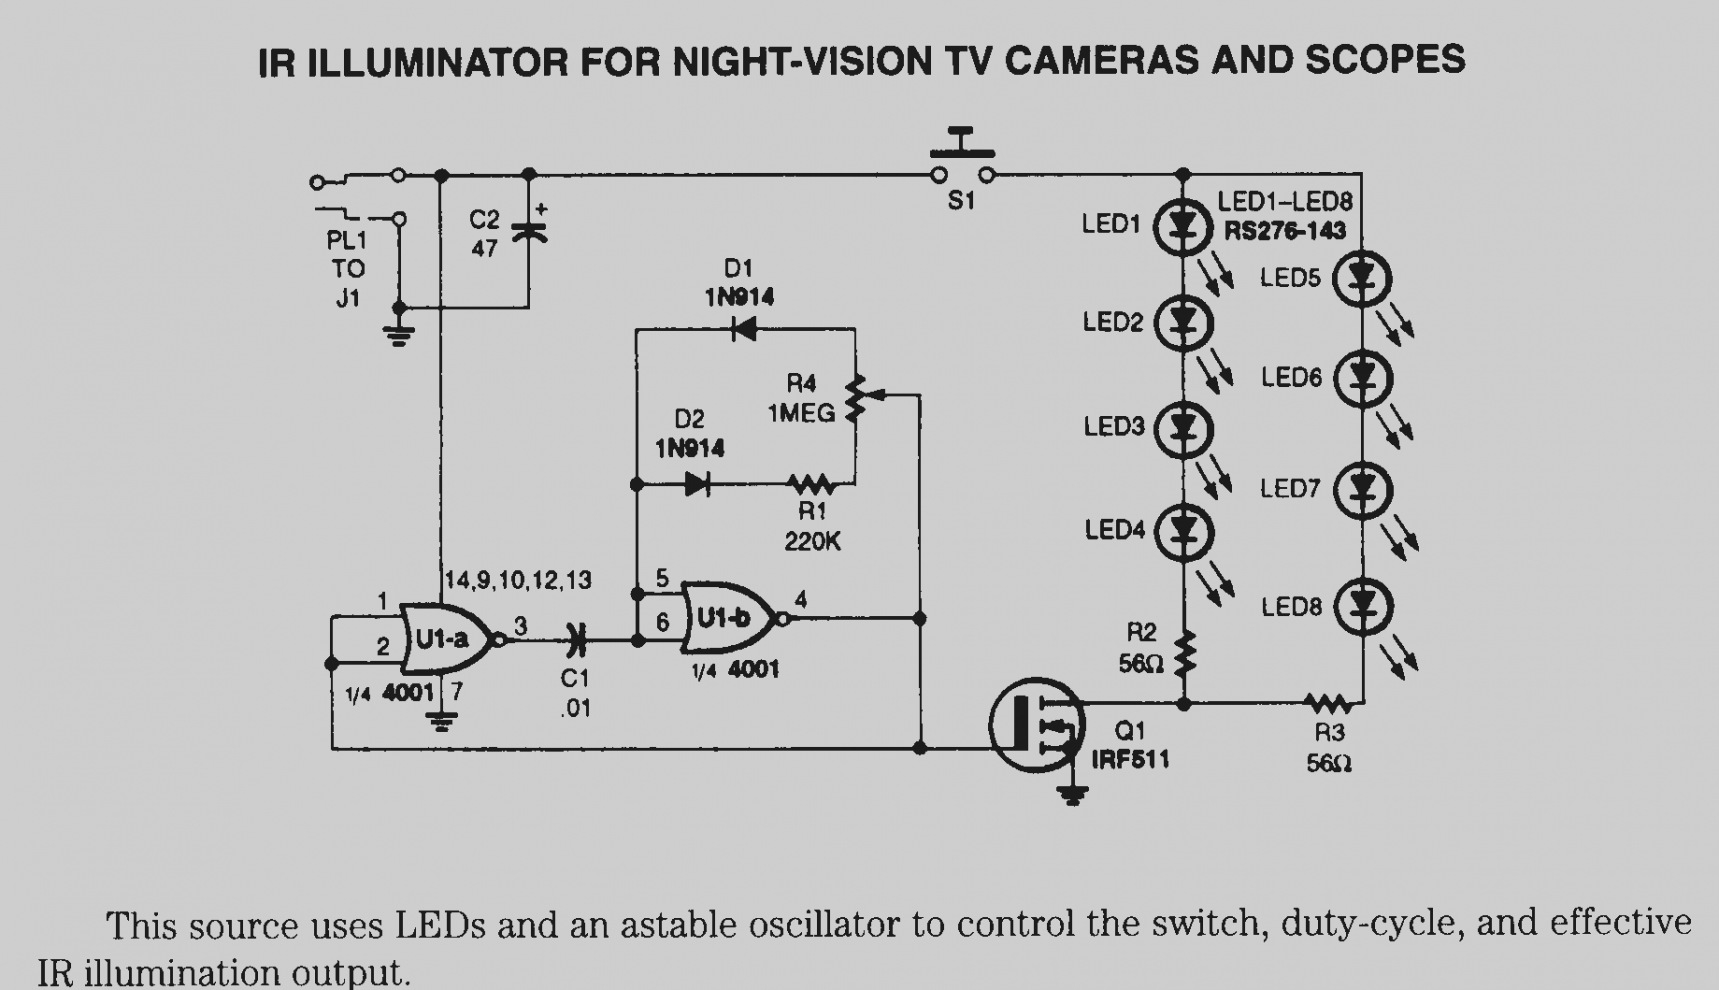 hight resolution of night vision camera wiring diagram simple wiring diagram ford camera wiring schematic infrared camera wiring schematic